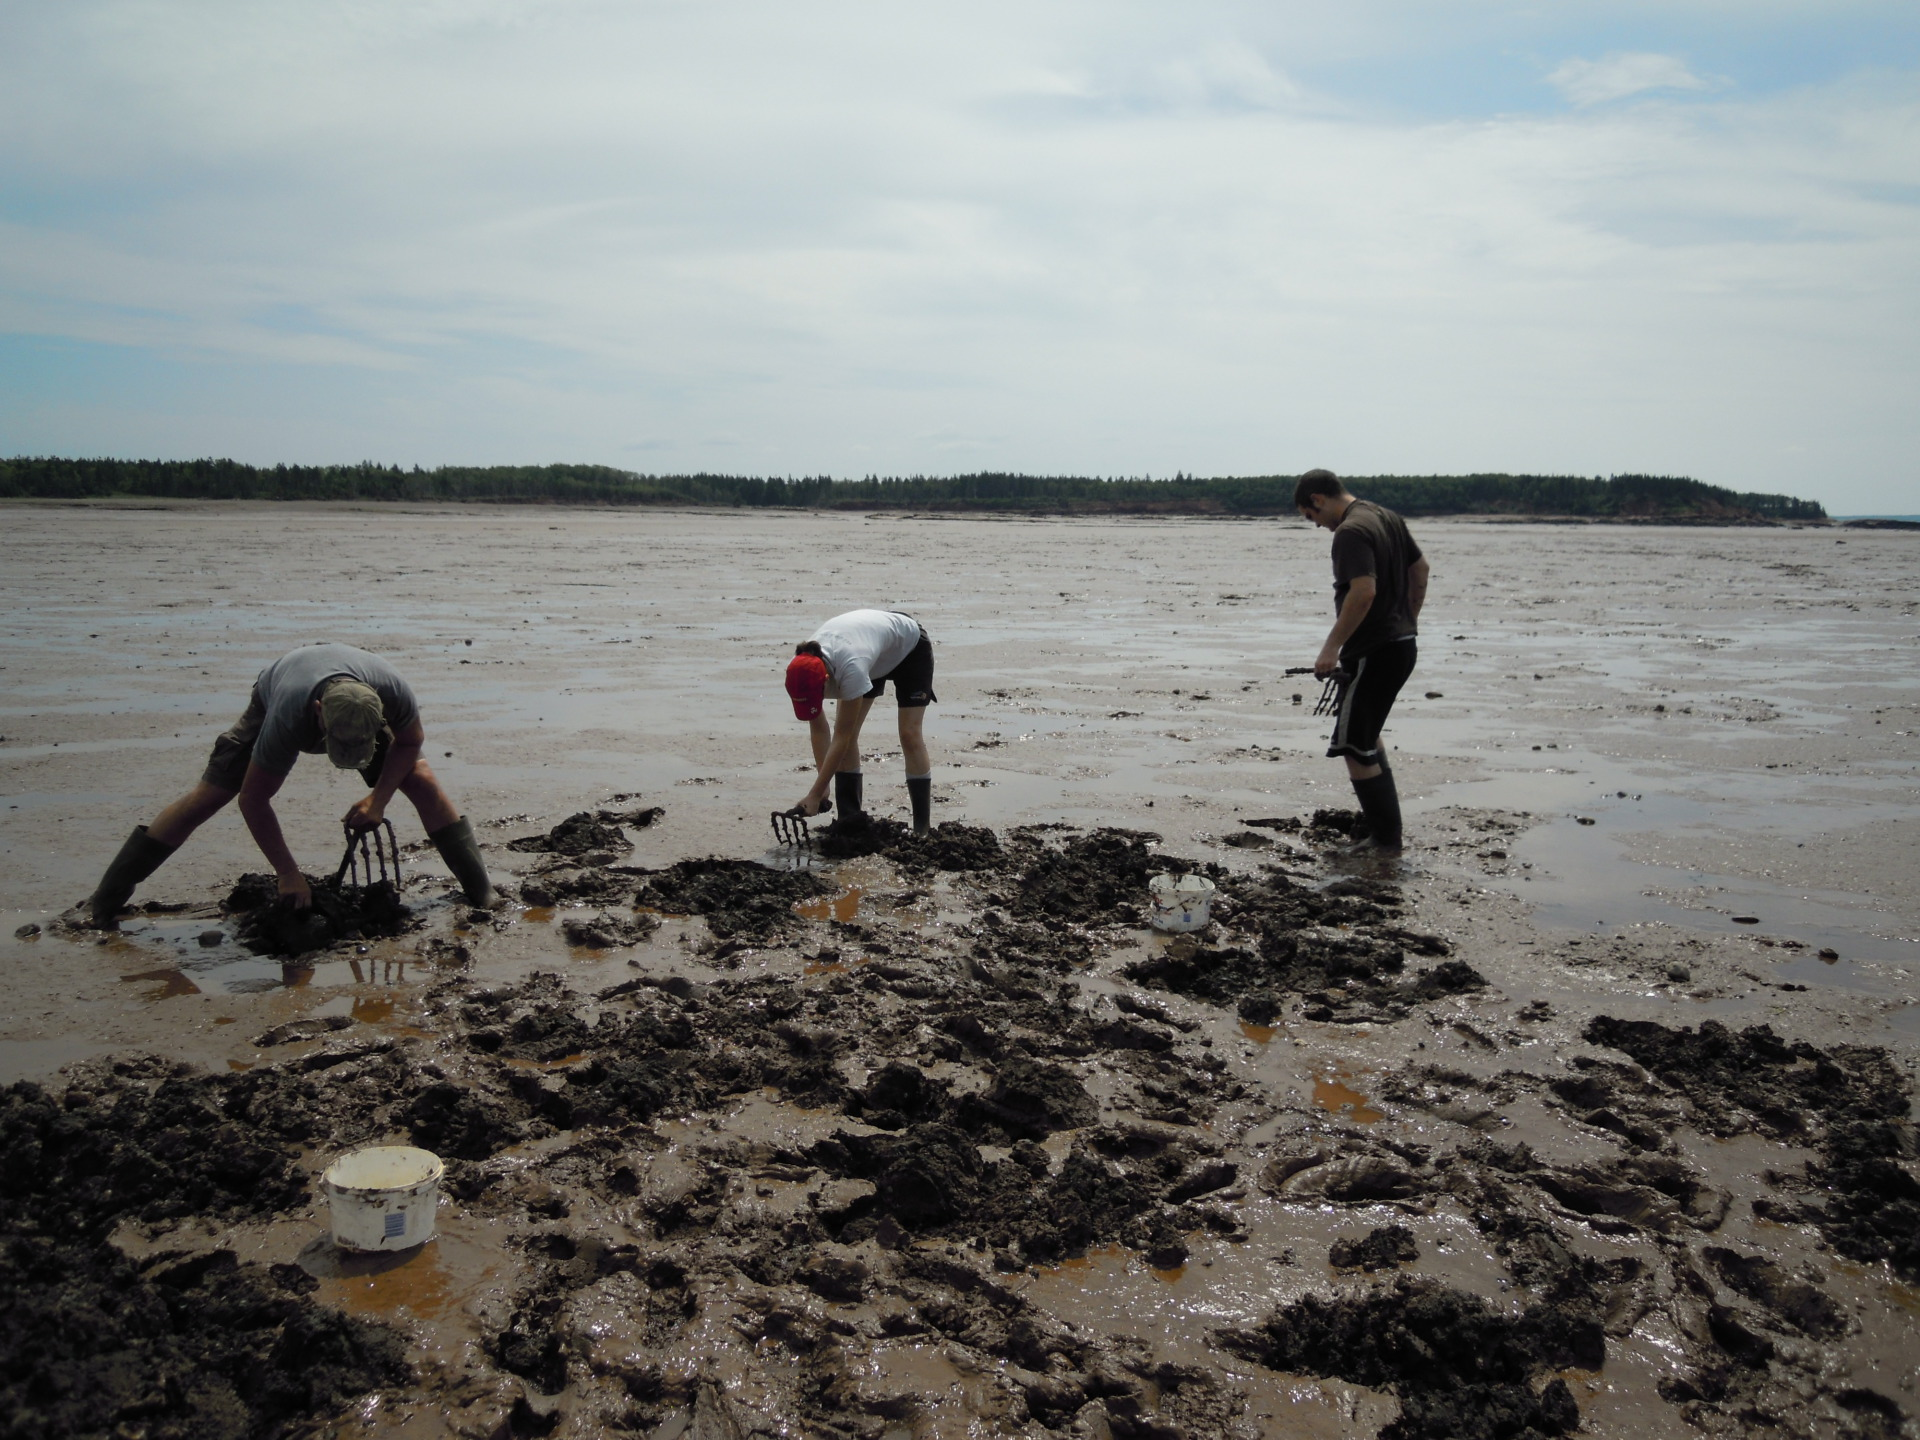 Clamming on the mud flats in the Minus Basin in the Bay of Fundy